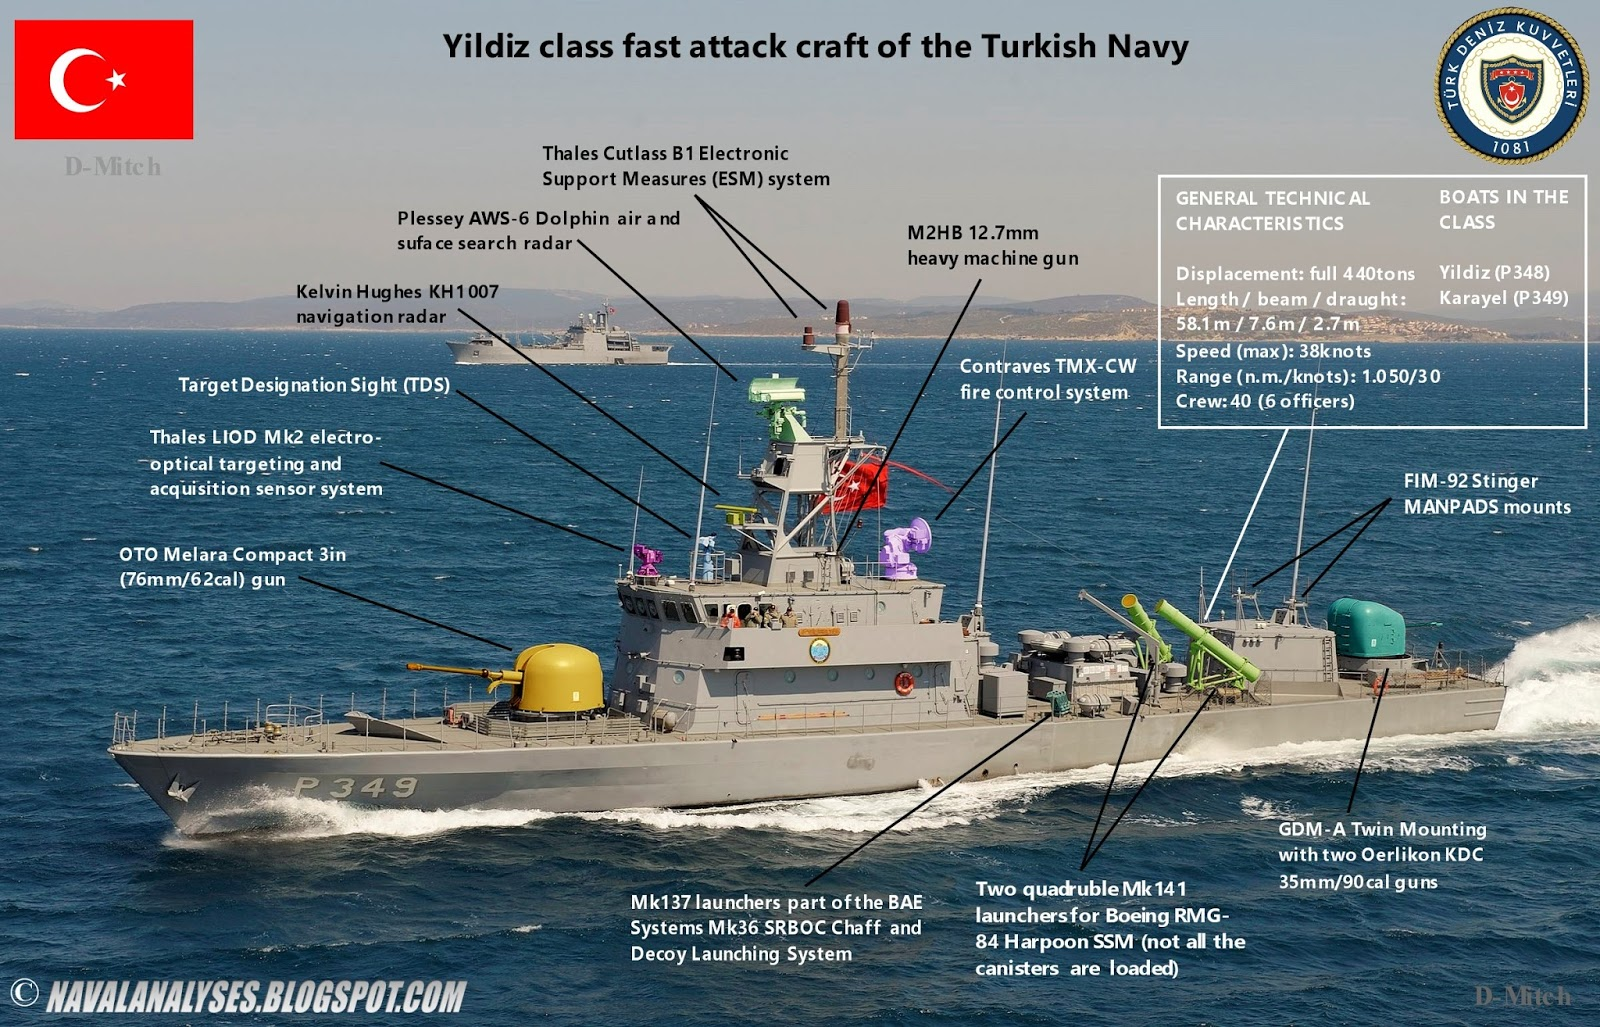 Naval Analyses: Dogan, Ruzgar and Yildiz class fast attack